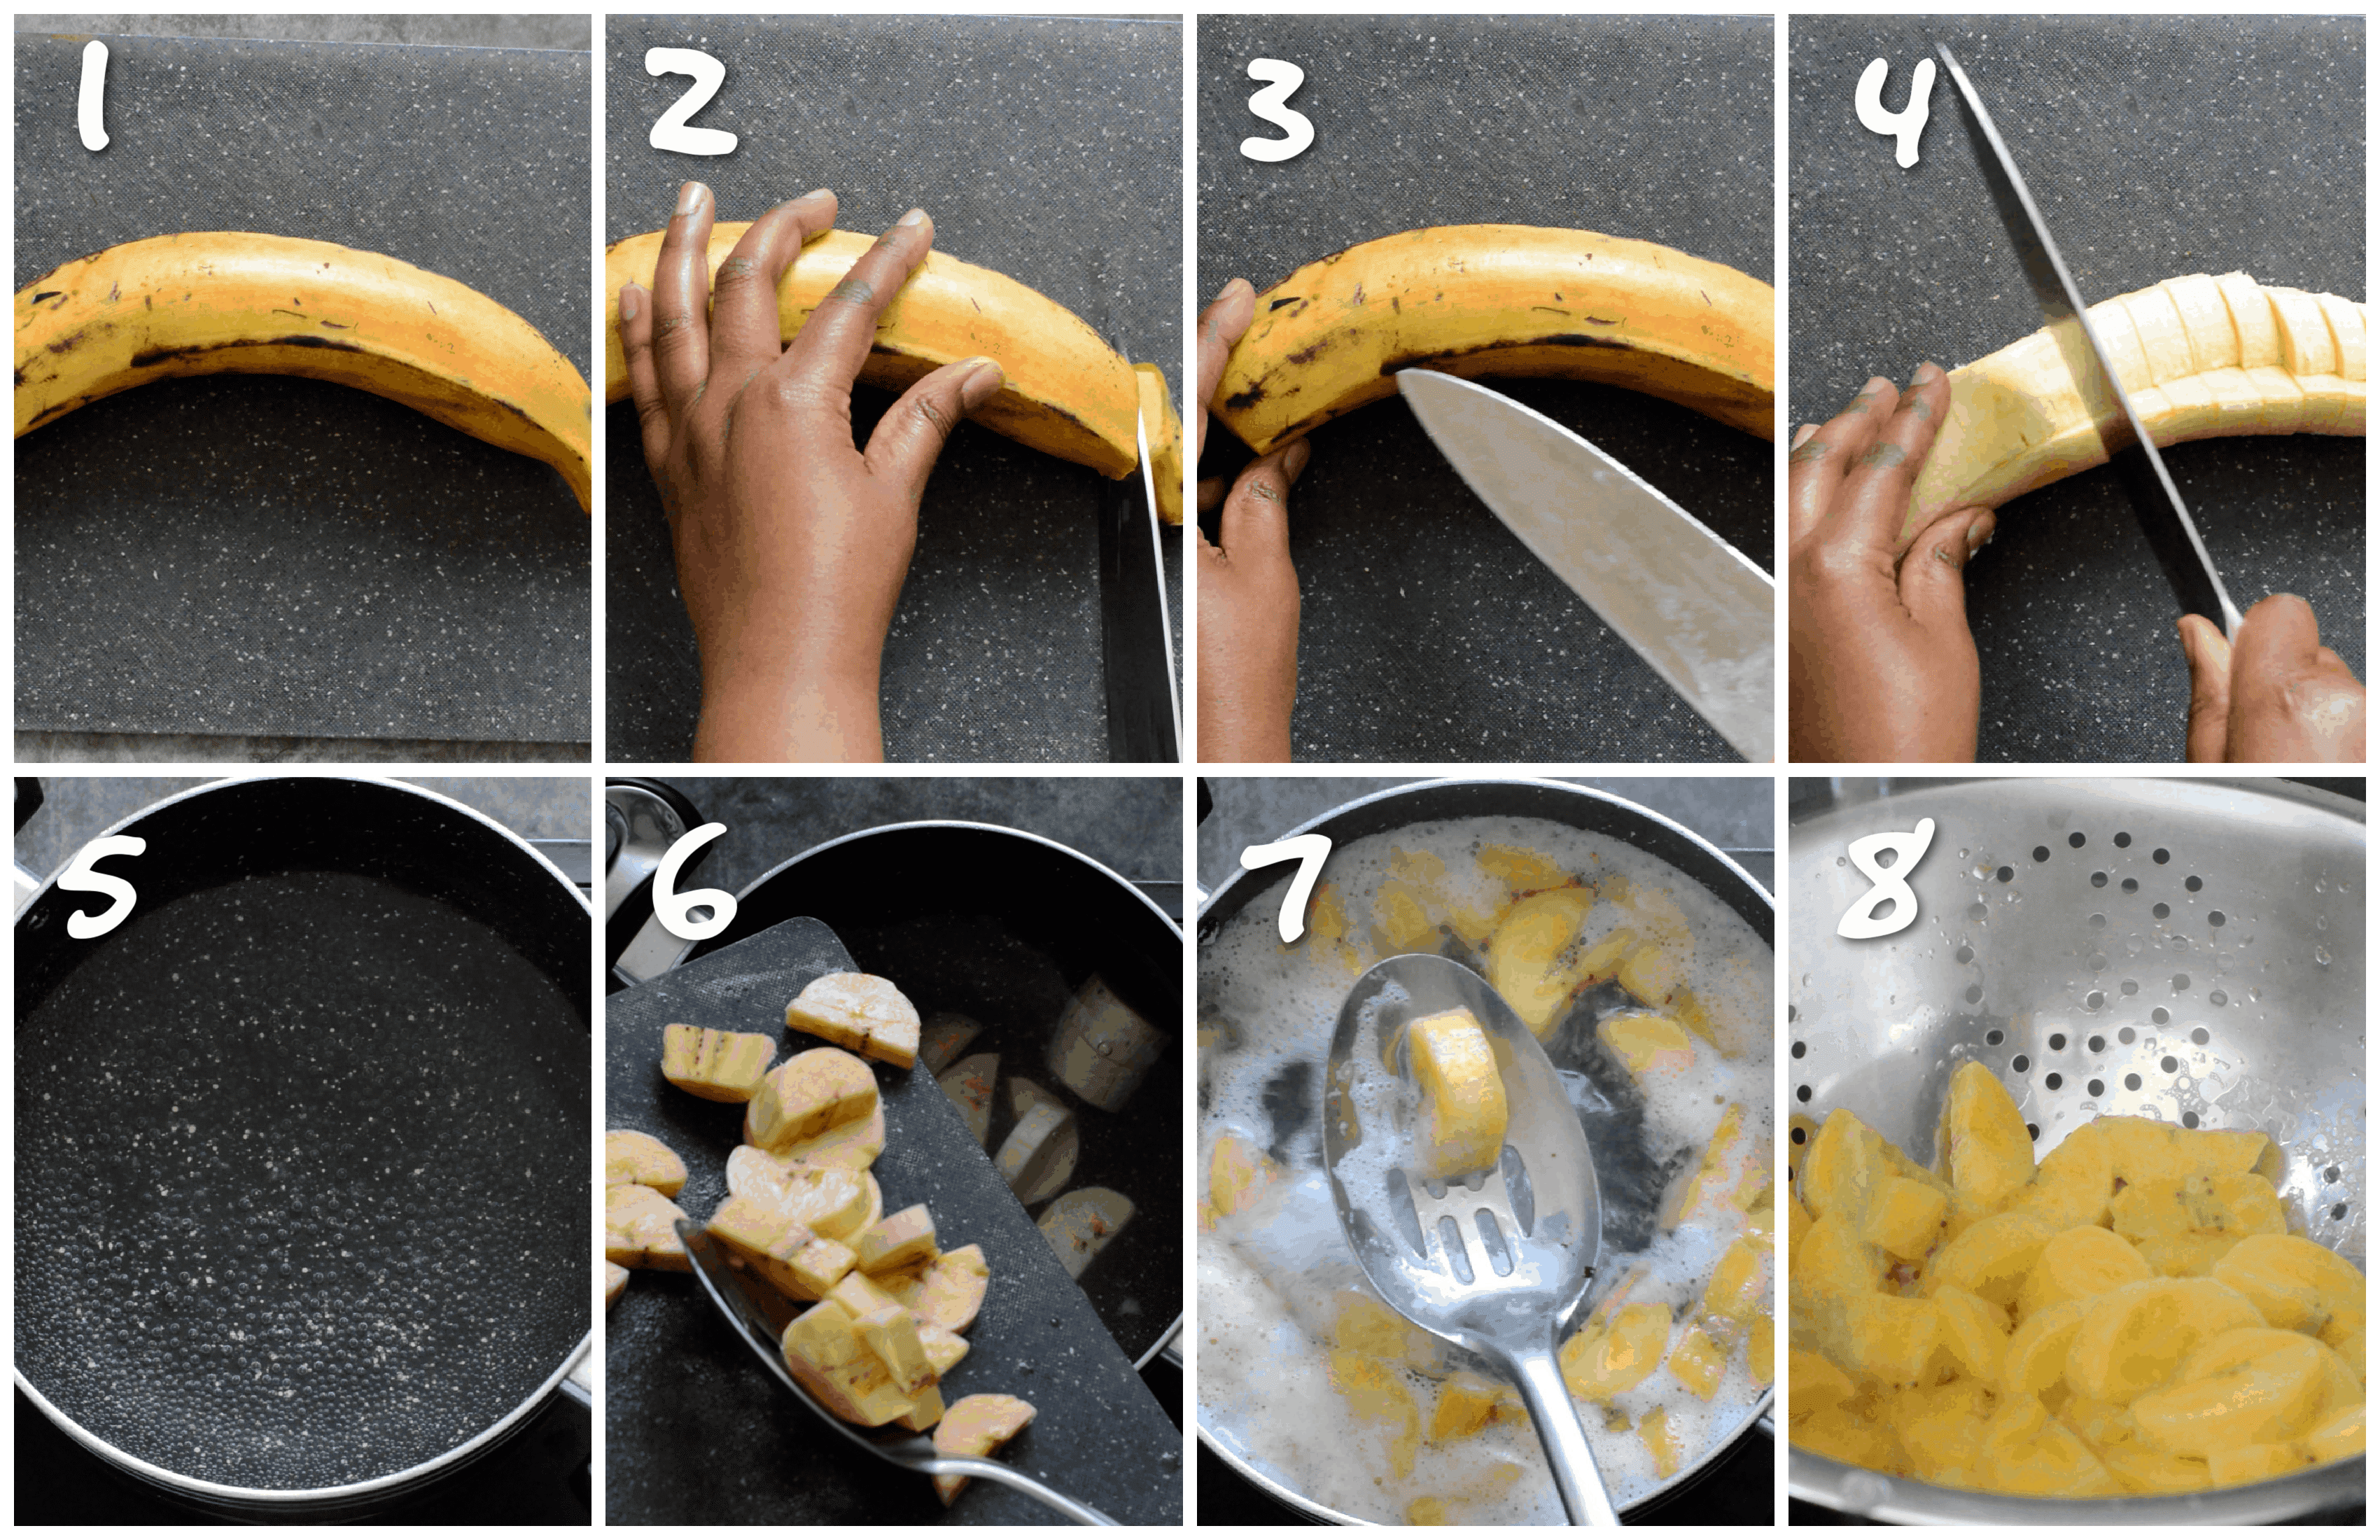 steps1-8 chopping the plantain and boiling it